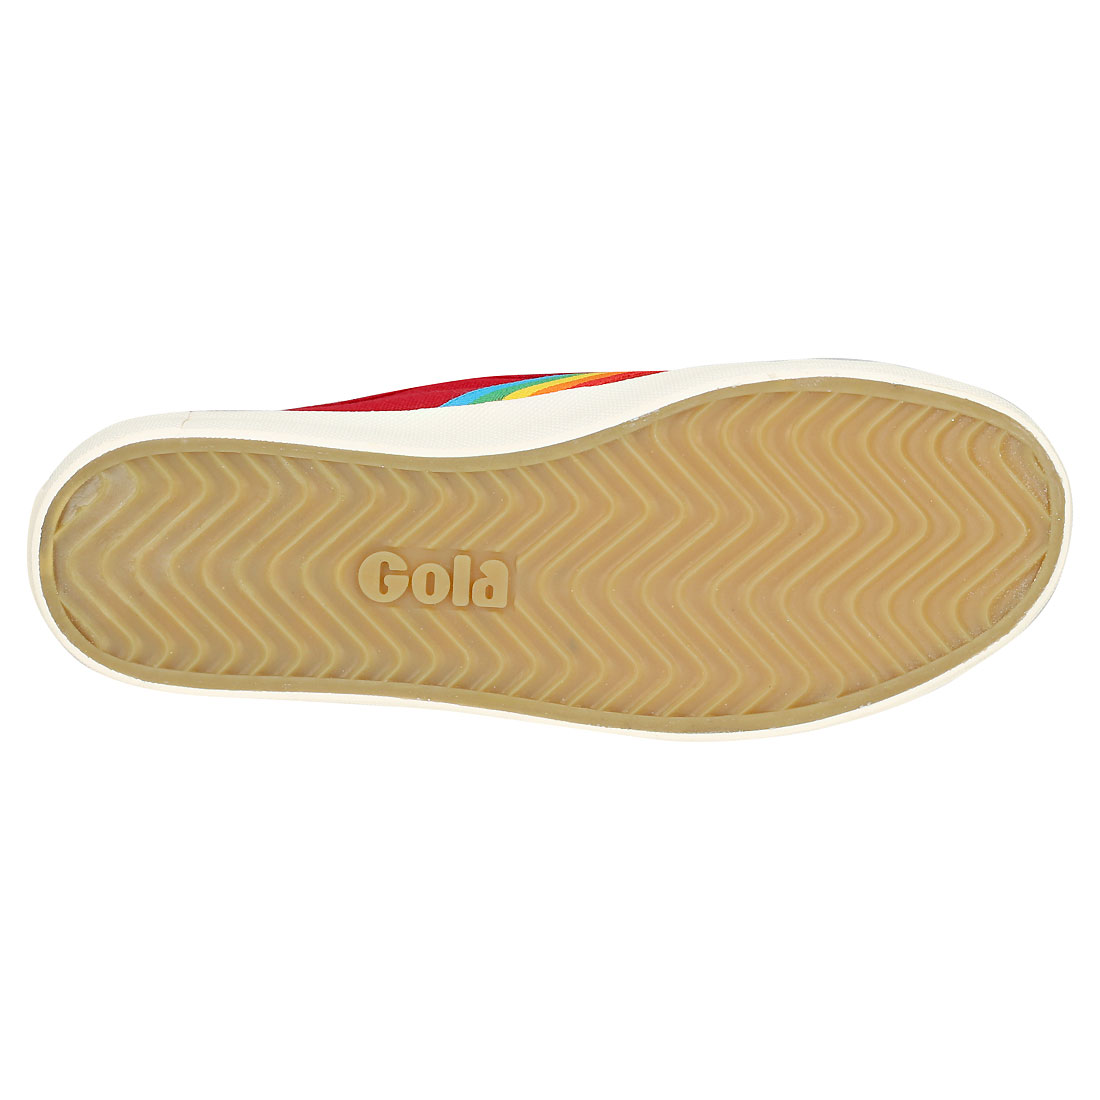 Gola Coaster Rainbow Damen Red Red Red Multicolour Leinwand Sneaker 01b775